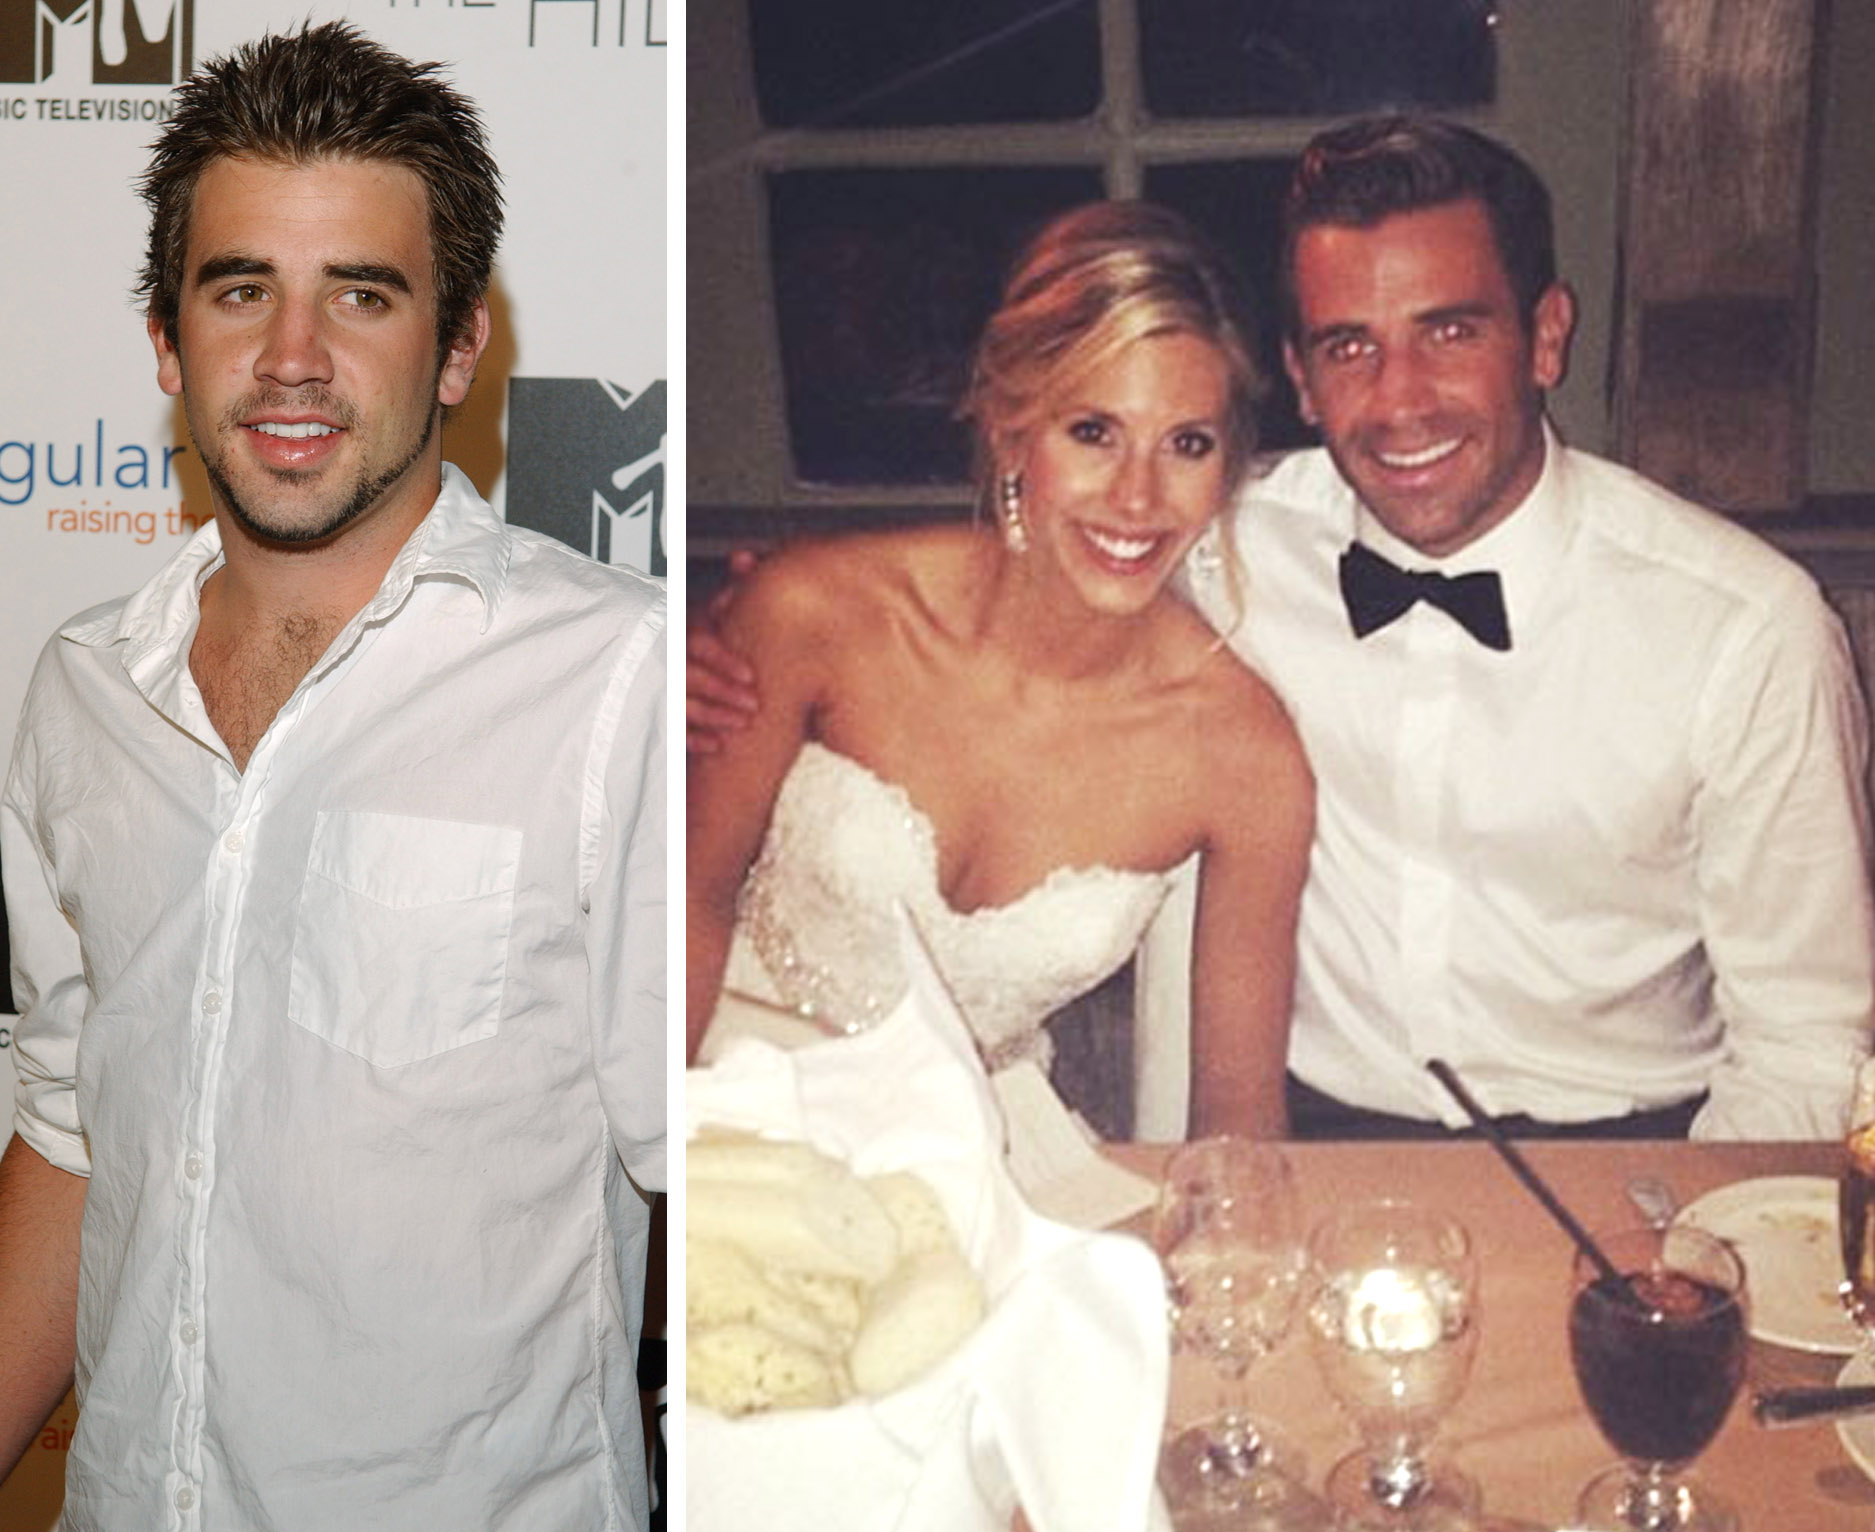 Kristin Cavallari Wedding.Kristin Cavallari Lauren Conrad And More Laguna Beach Stars Who